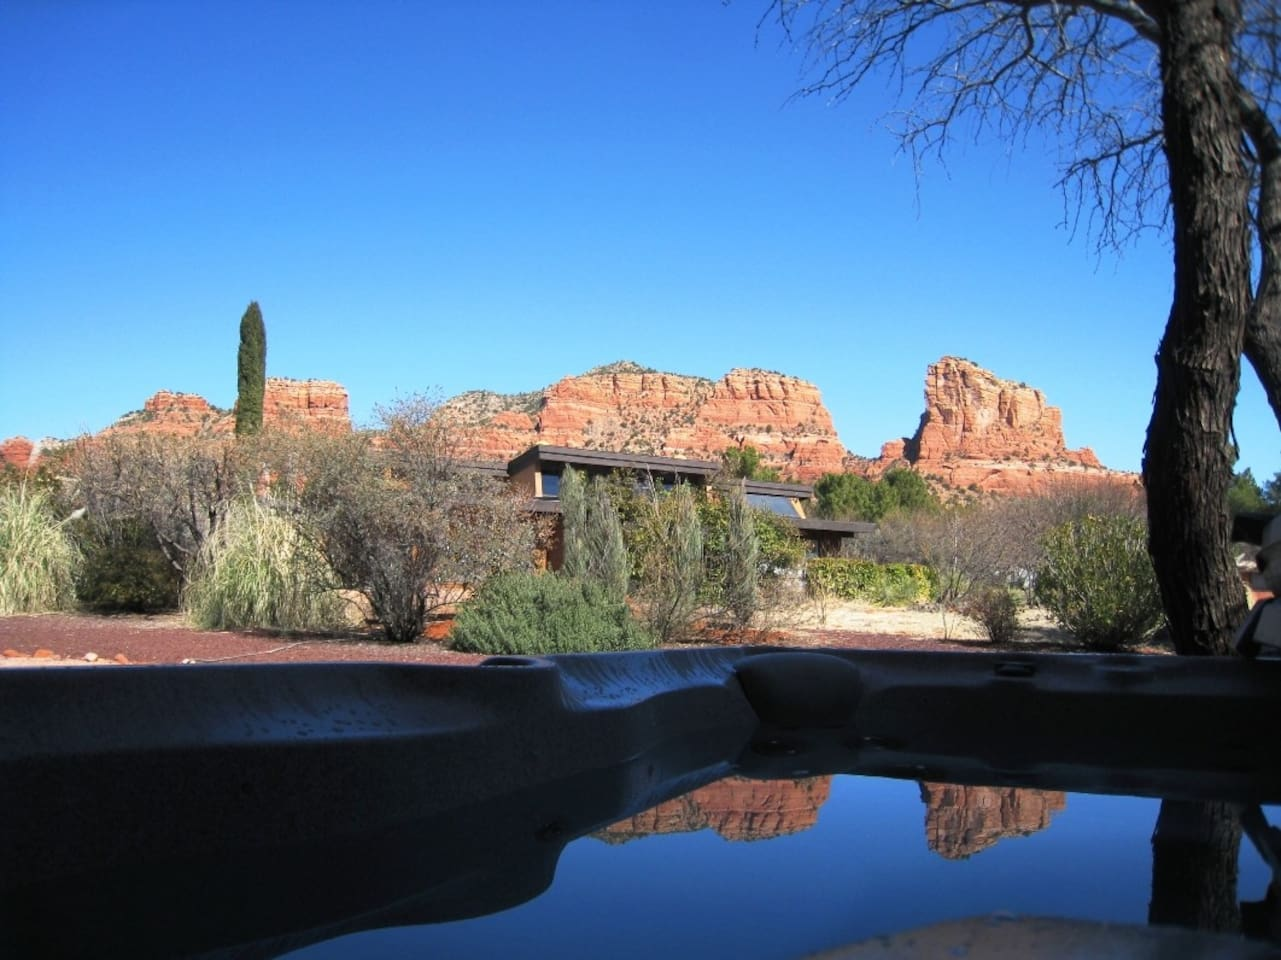 Red rock View From Hot Tub